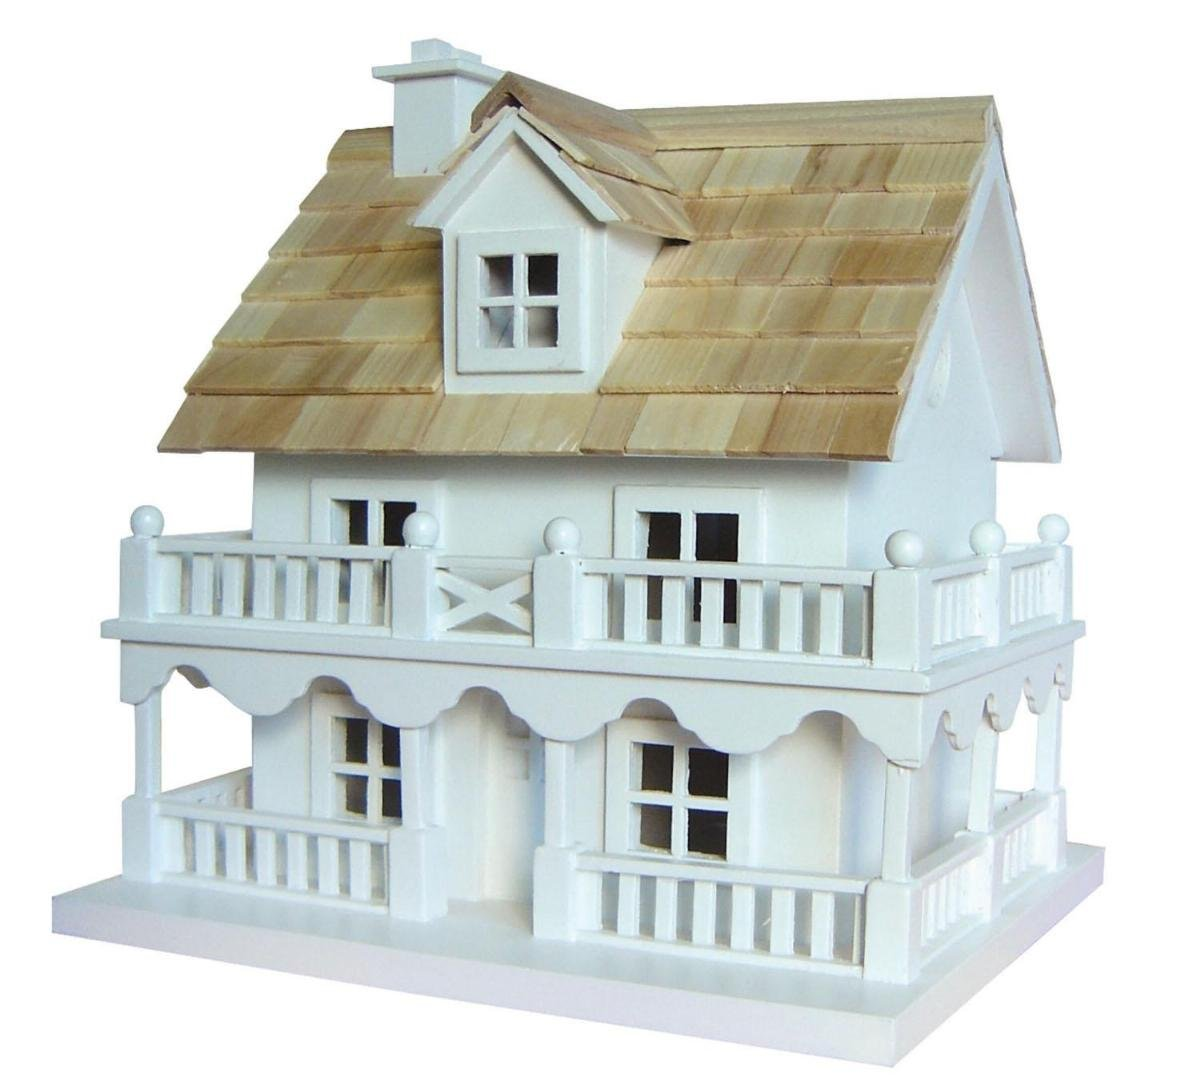 Home Bazaar, Inc. Novelty Cottage 2 pc. Pre-pack